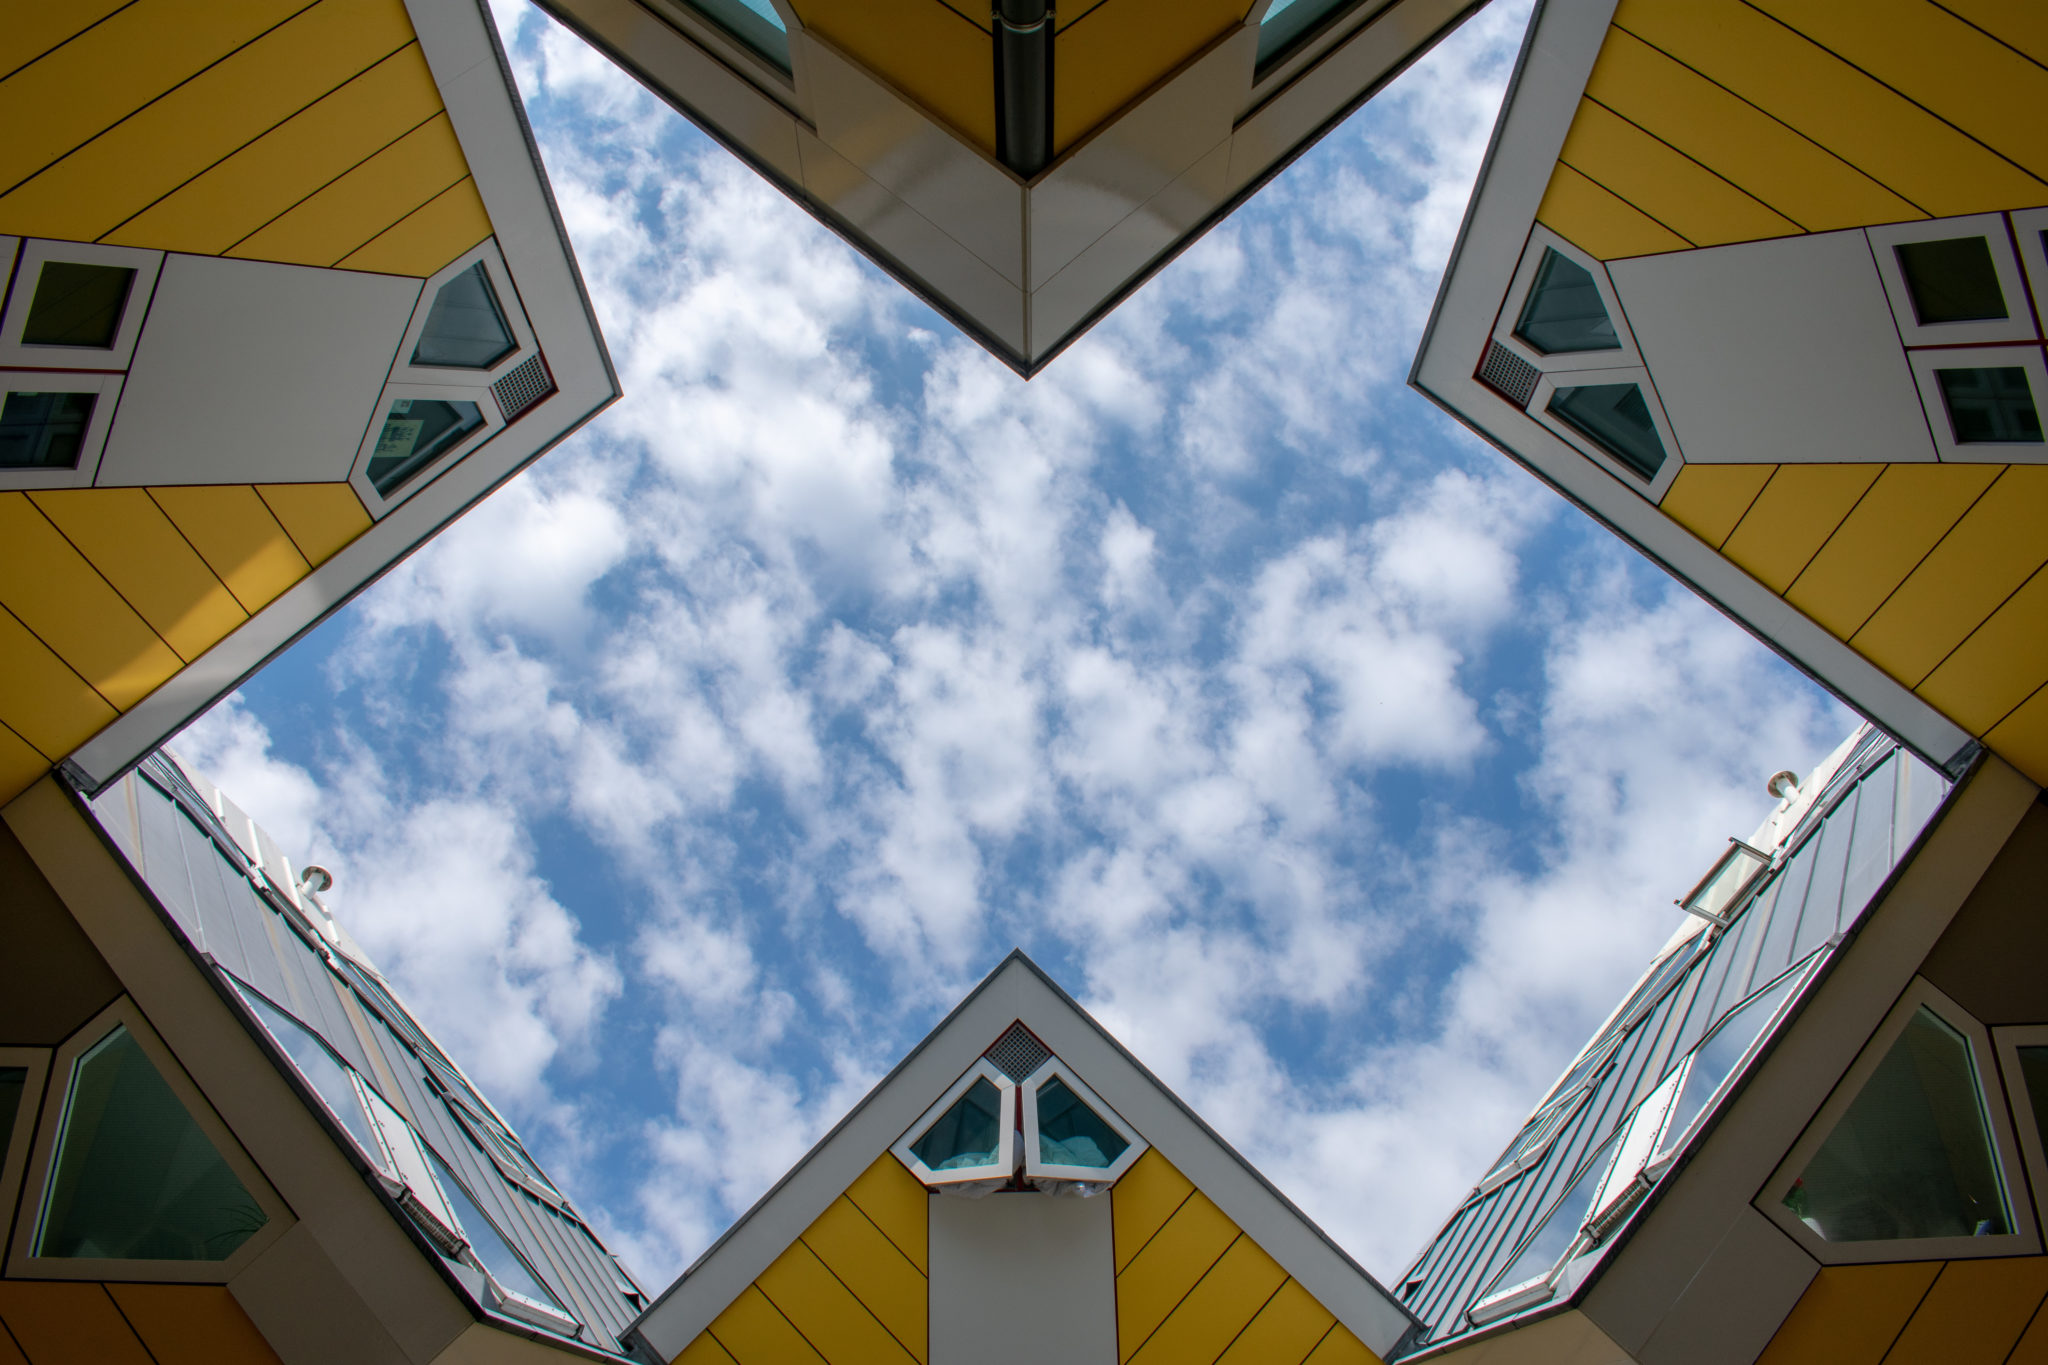 7 top things to do in rotterdam netherlands london city calling alternatively you could stay inside a cube house yourself one of the cubes is available on airbnb for 120 a night whilst the big cube is home to a solutioingenieria Images